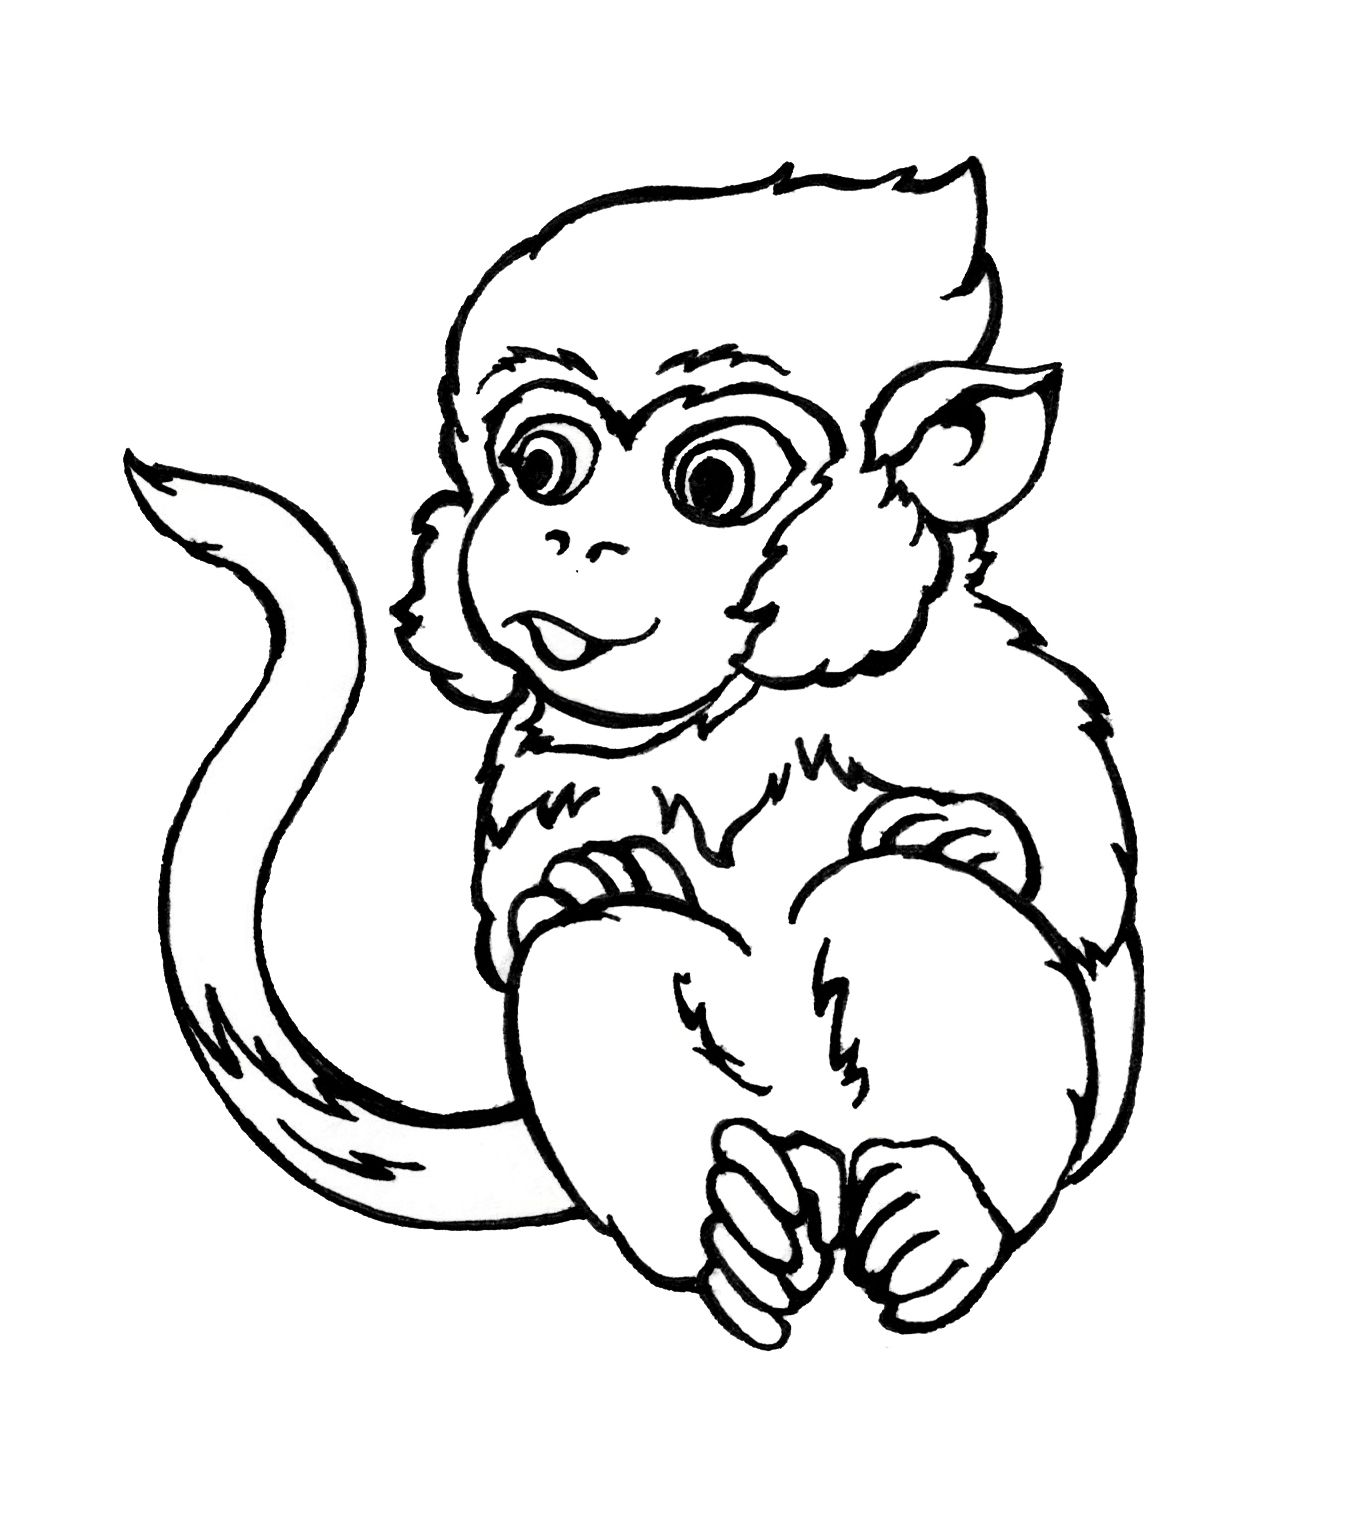 Cheeky Monkey FREE colouring sheet from Snowflake Books